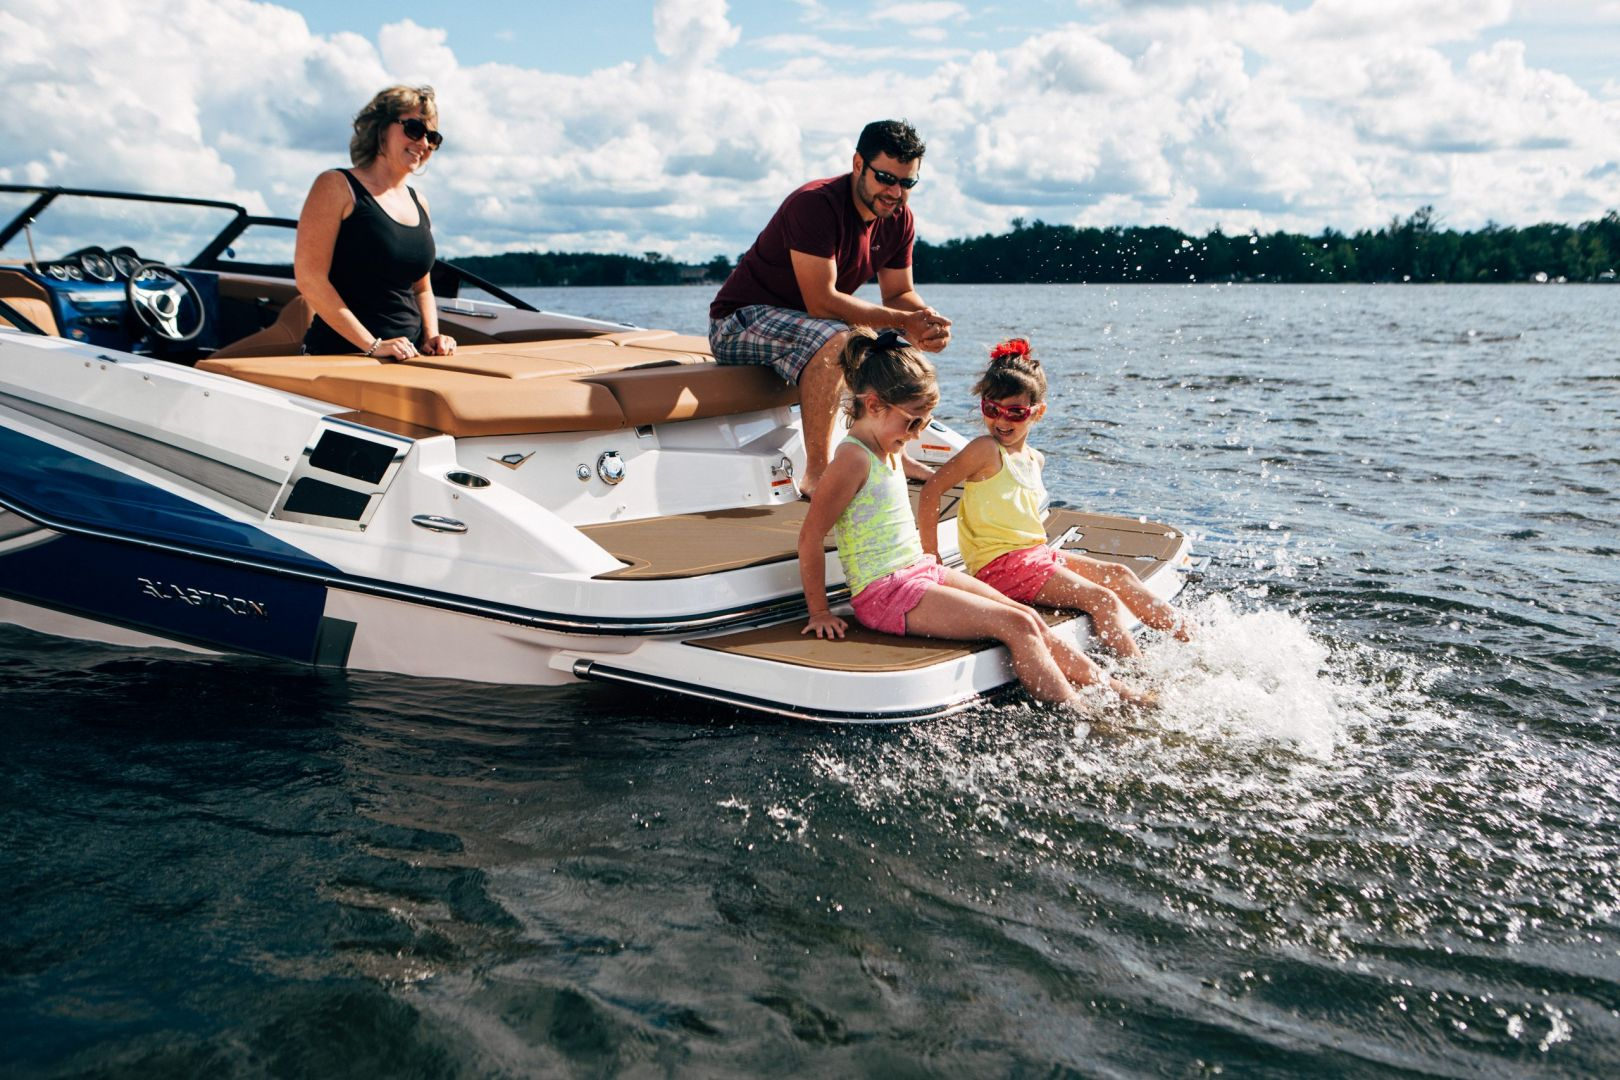 How to Enjoy Boating When you Don't Own a Boat